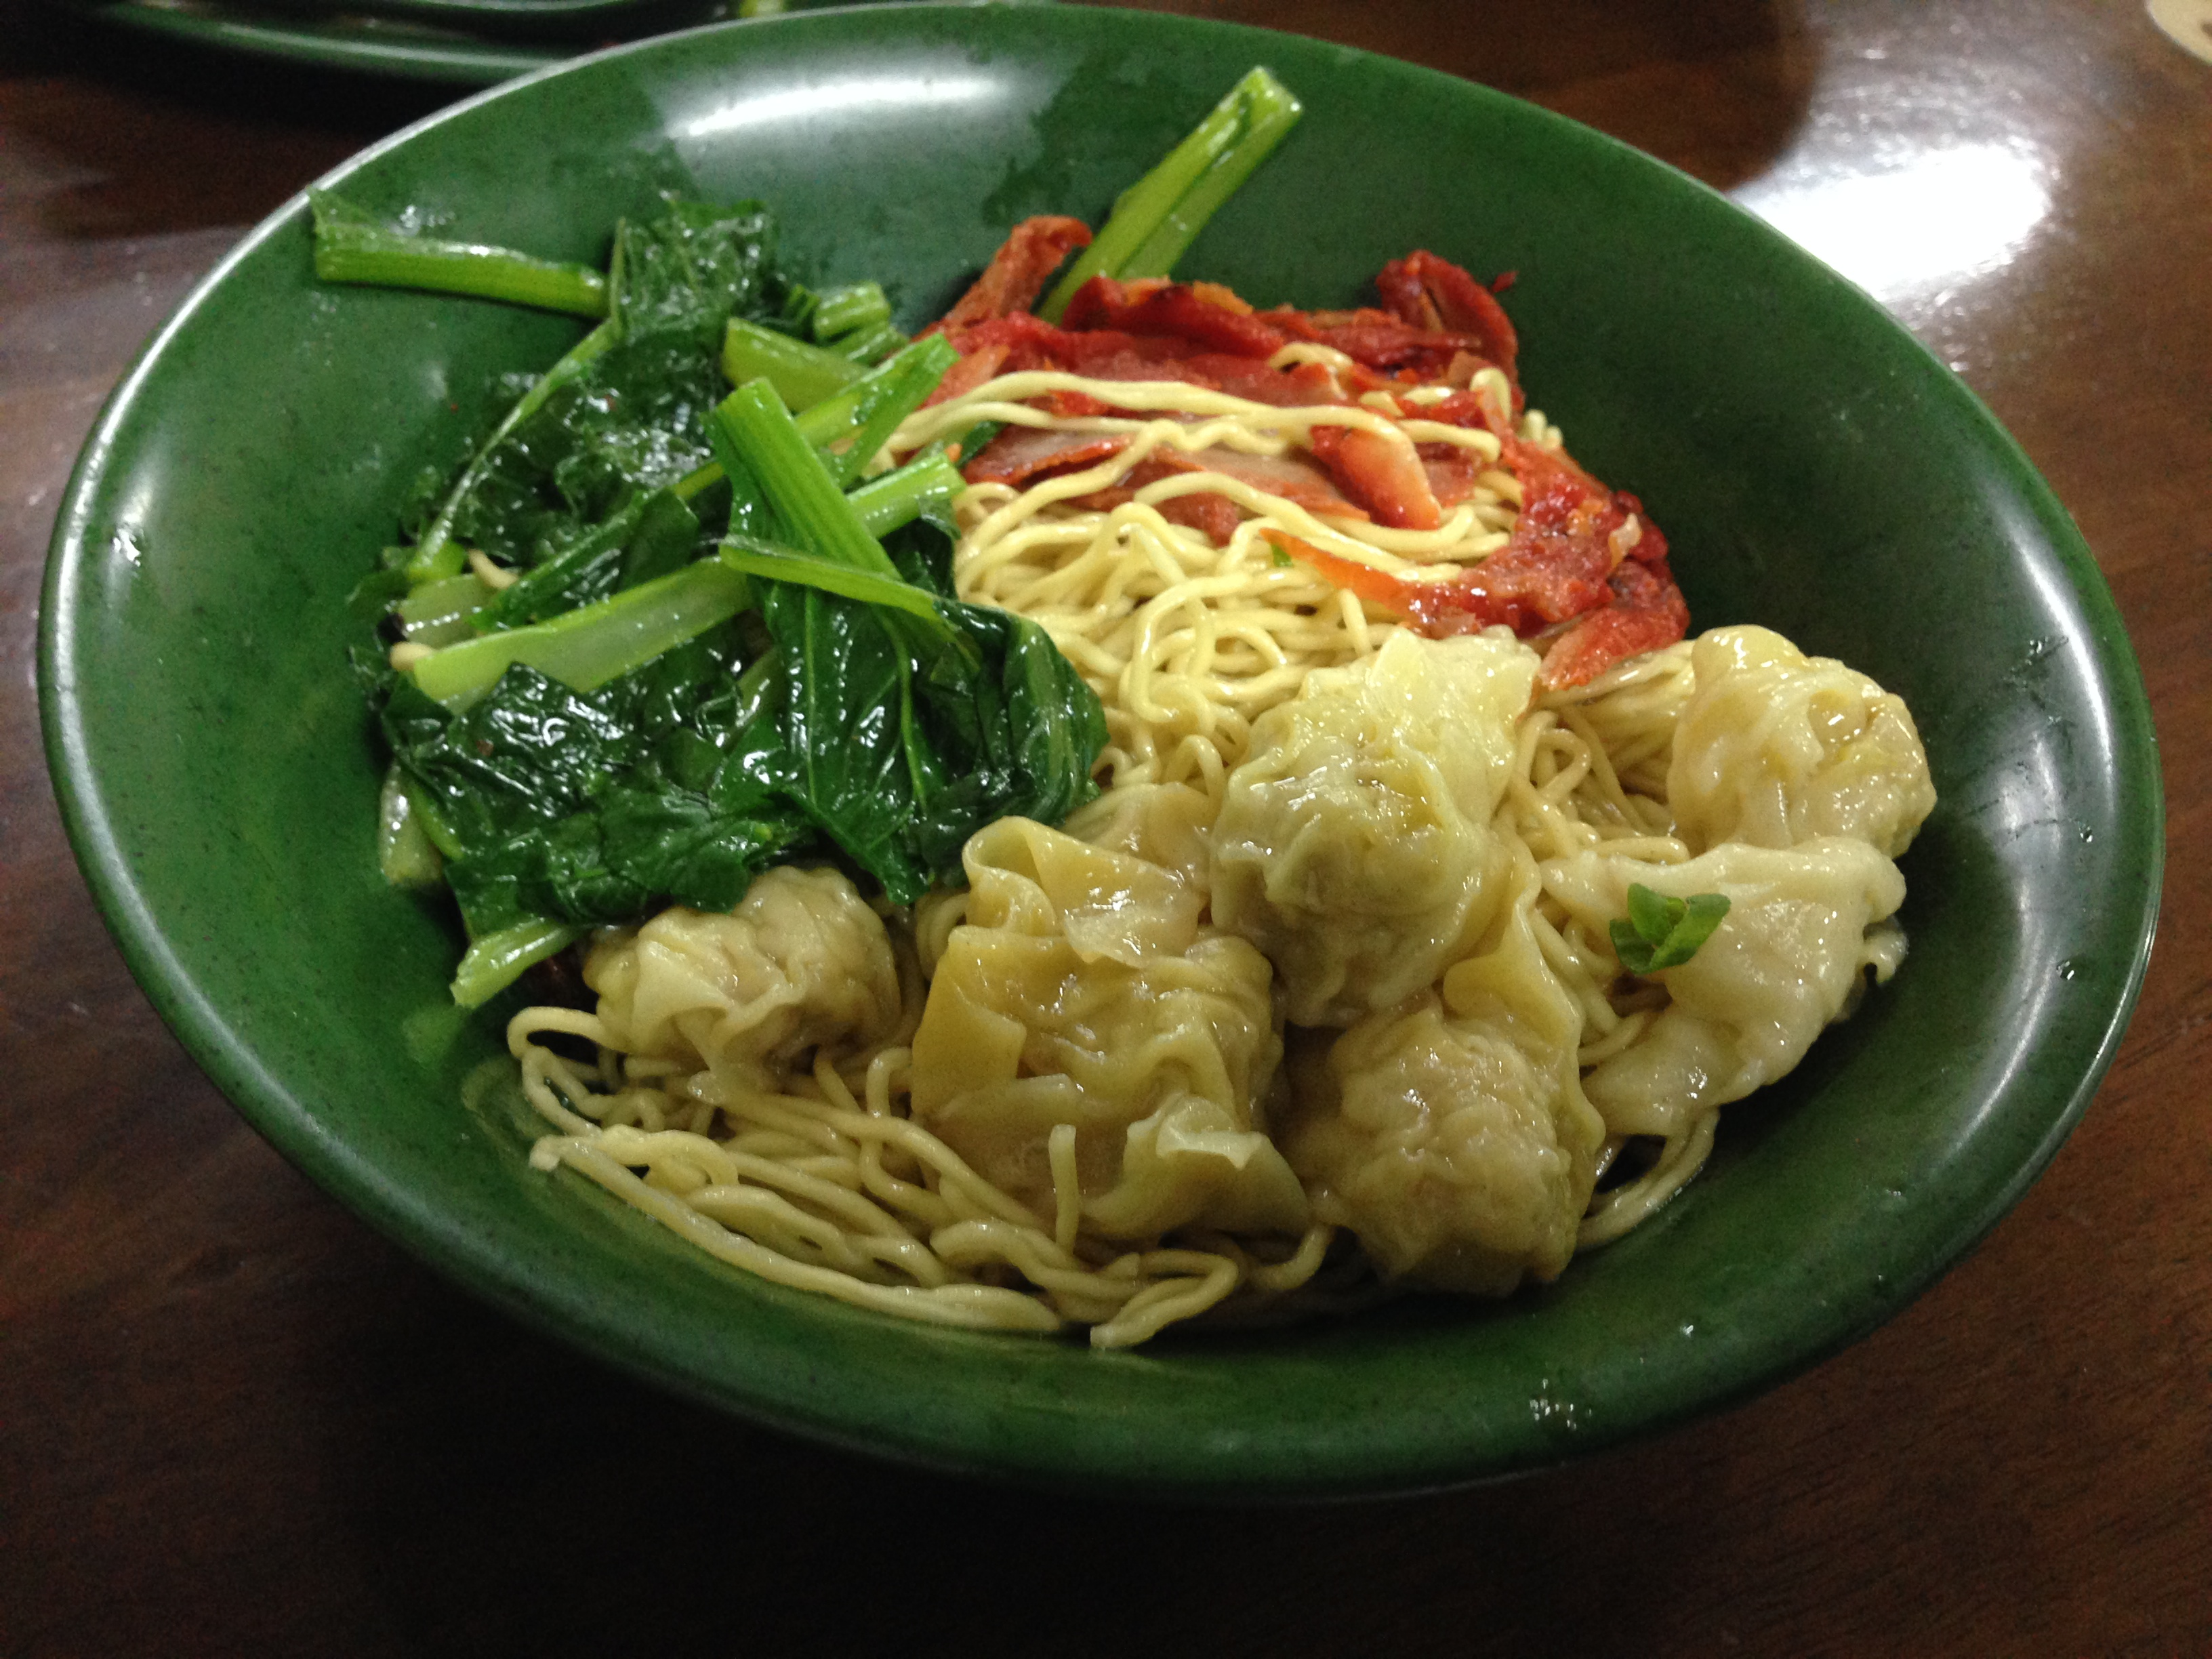 Engs Noodle House Food Review marcusgohmarcusgoh